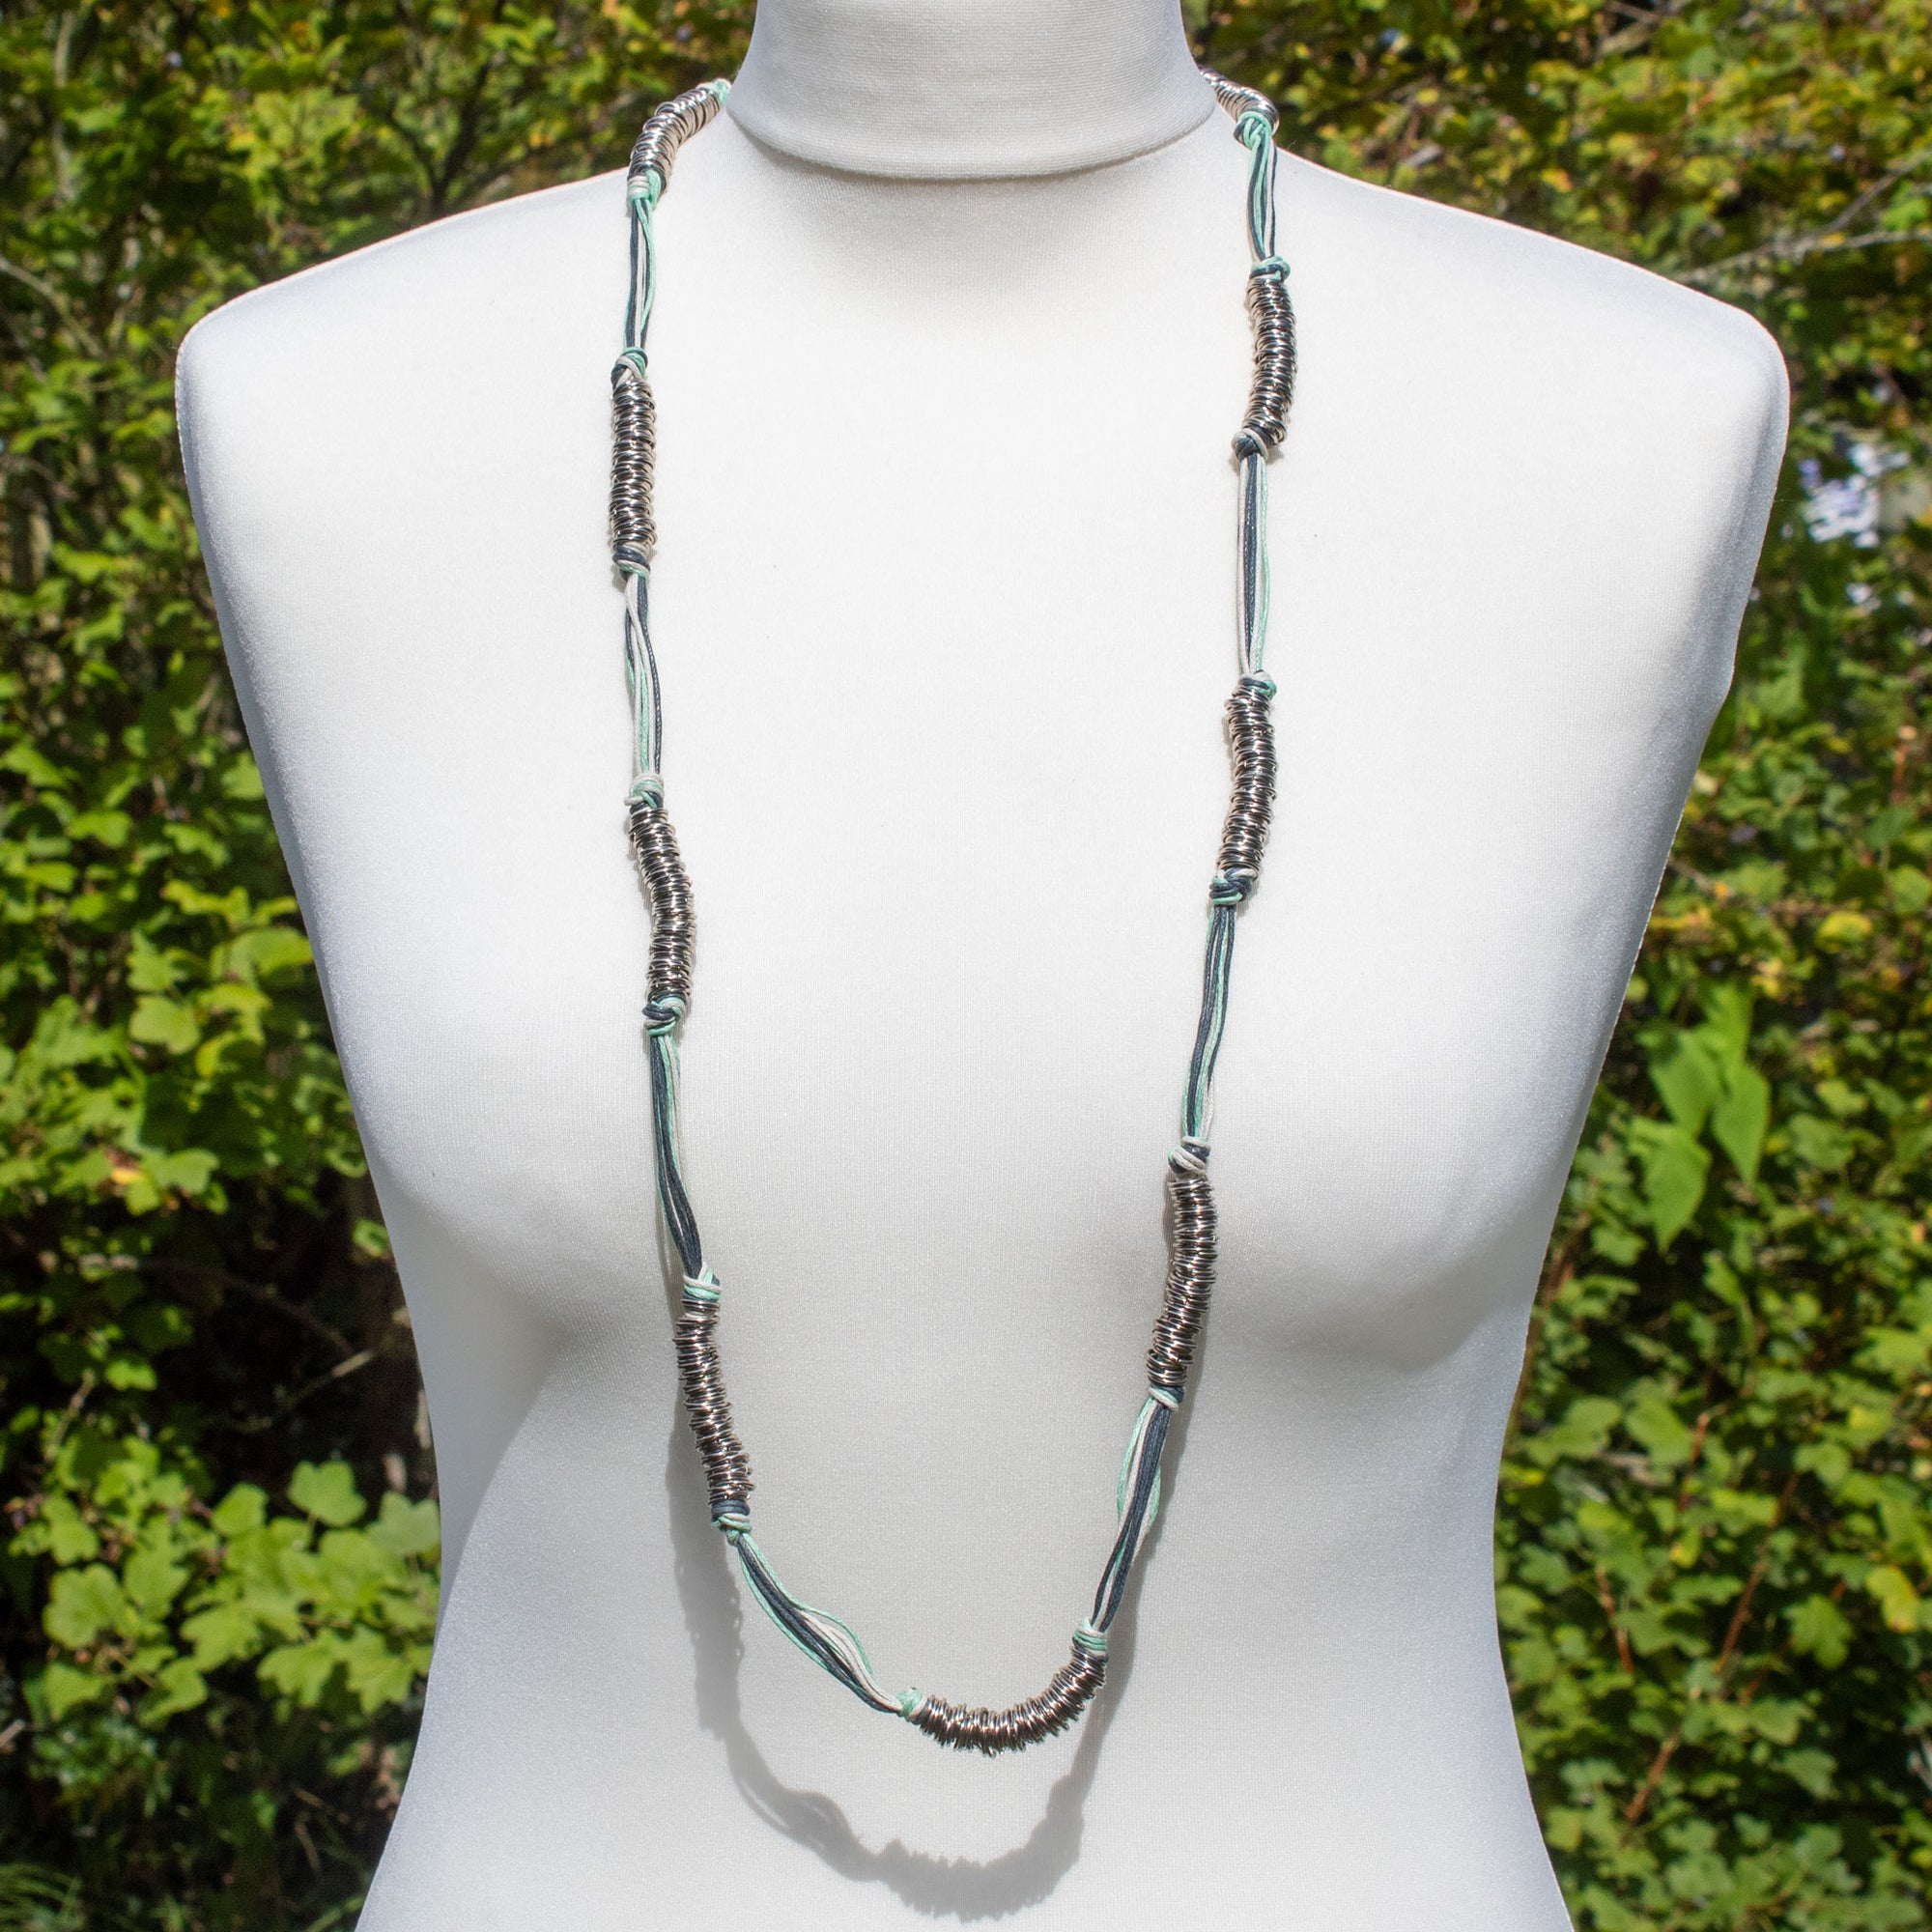 Mint Green & Blue Cord & Metallic Silver Ring Necklace | Necklace - The Naughty Shrew